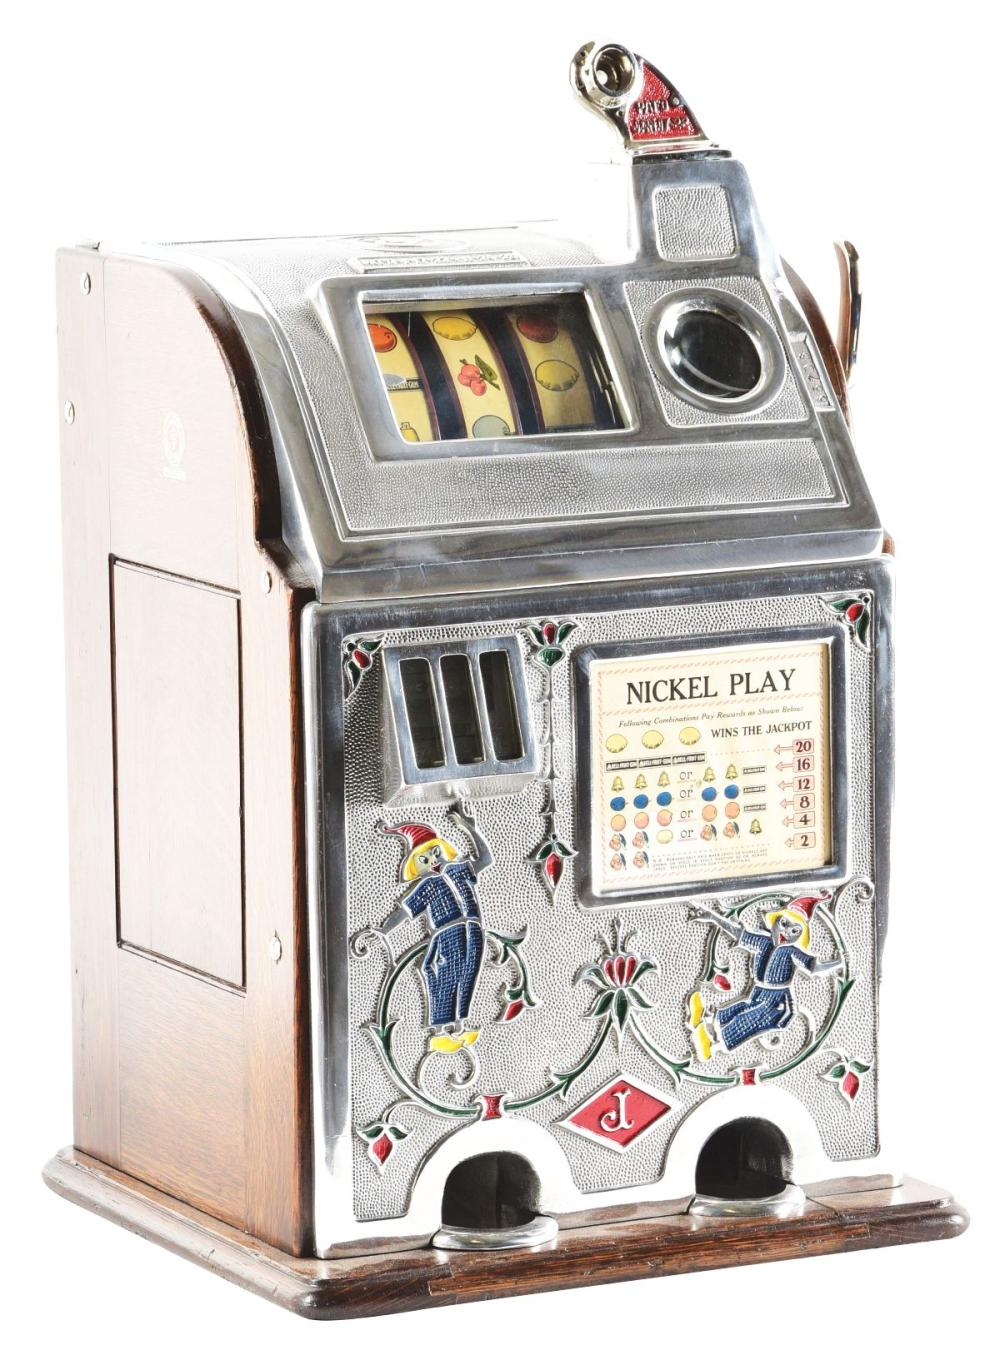 5¢ OD. JENNINGS DUTCH BOY JACKPOT BELL SLOT MACHINE.